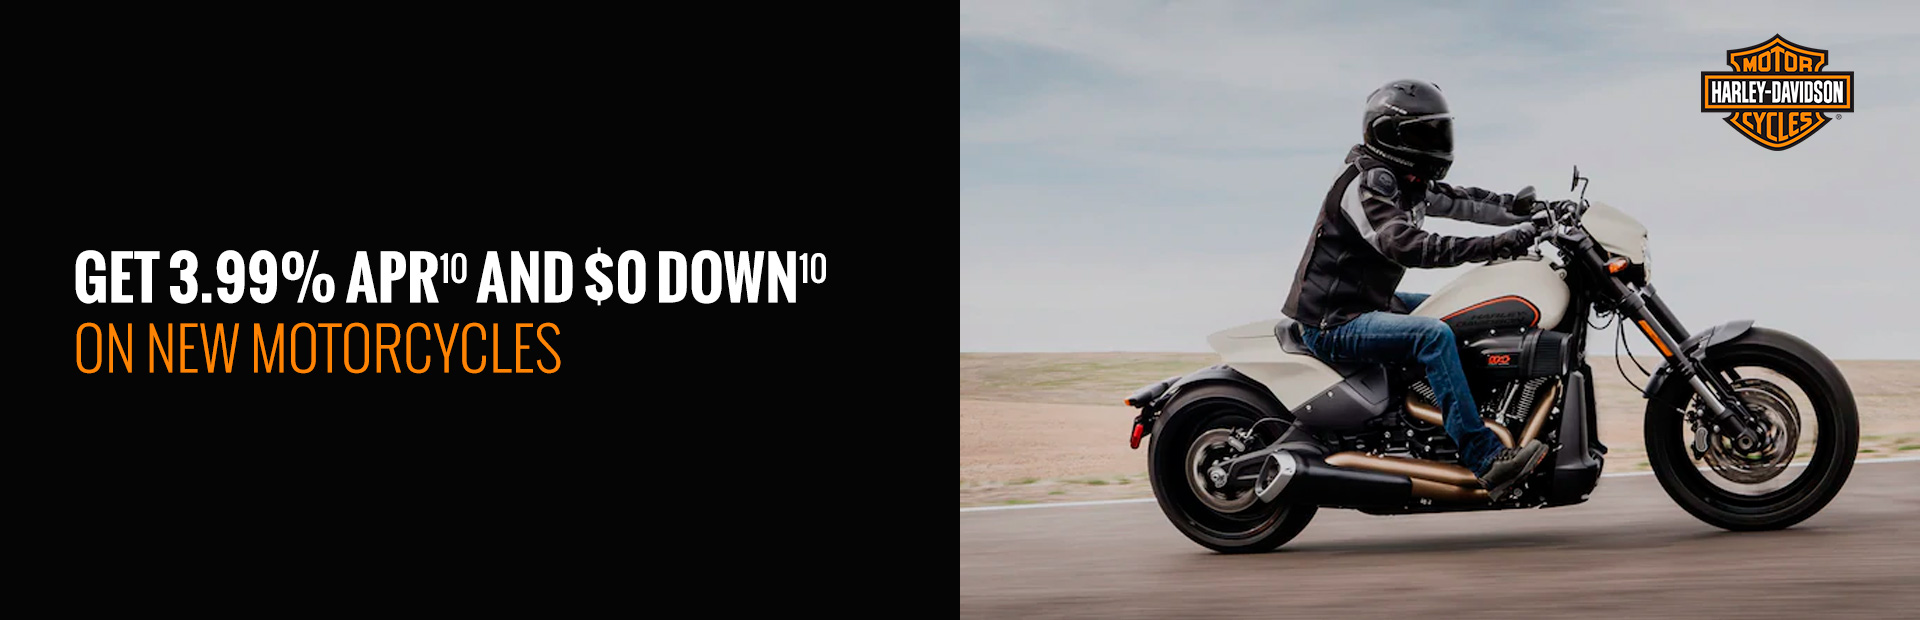 Harley-Davidson®: GET 3.99% APR AND $0 DOWN ON NEW MOTORCYCLES